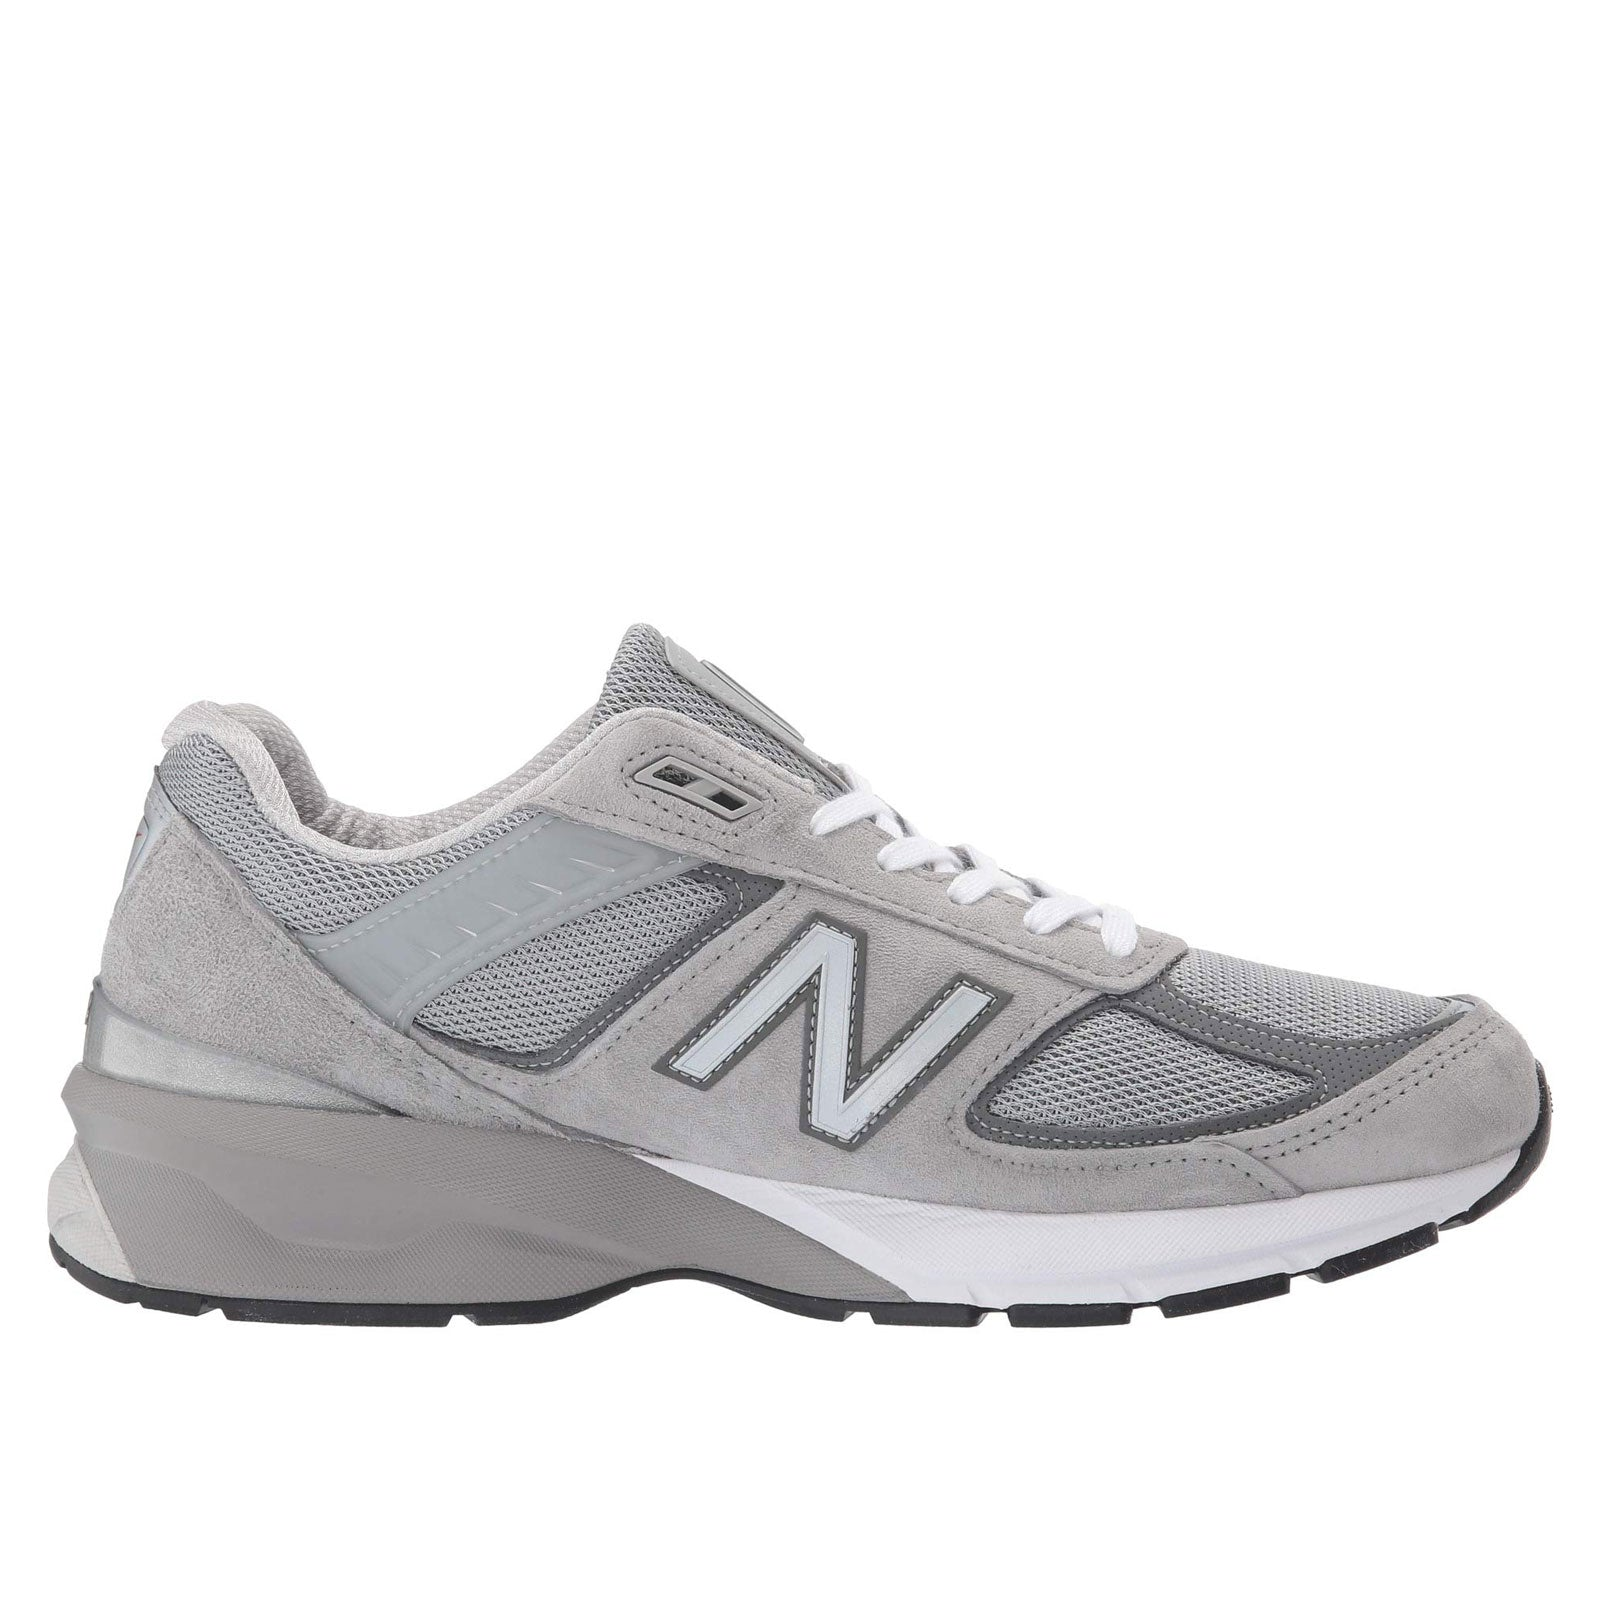 New Balance Running Course 990v5 – Milano Shoes